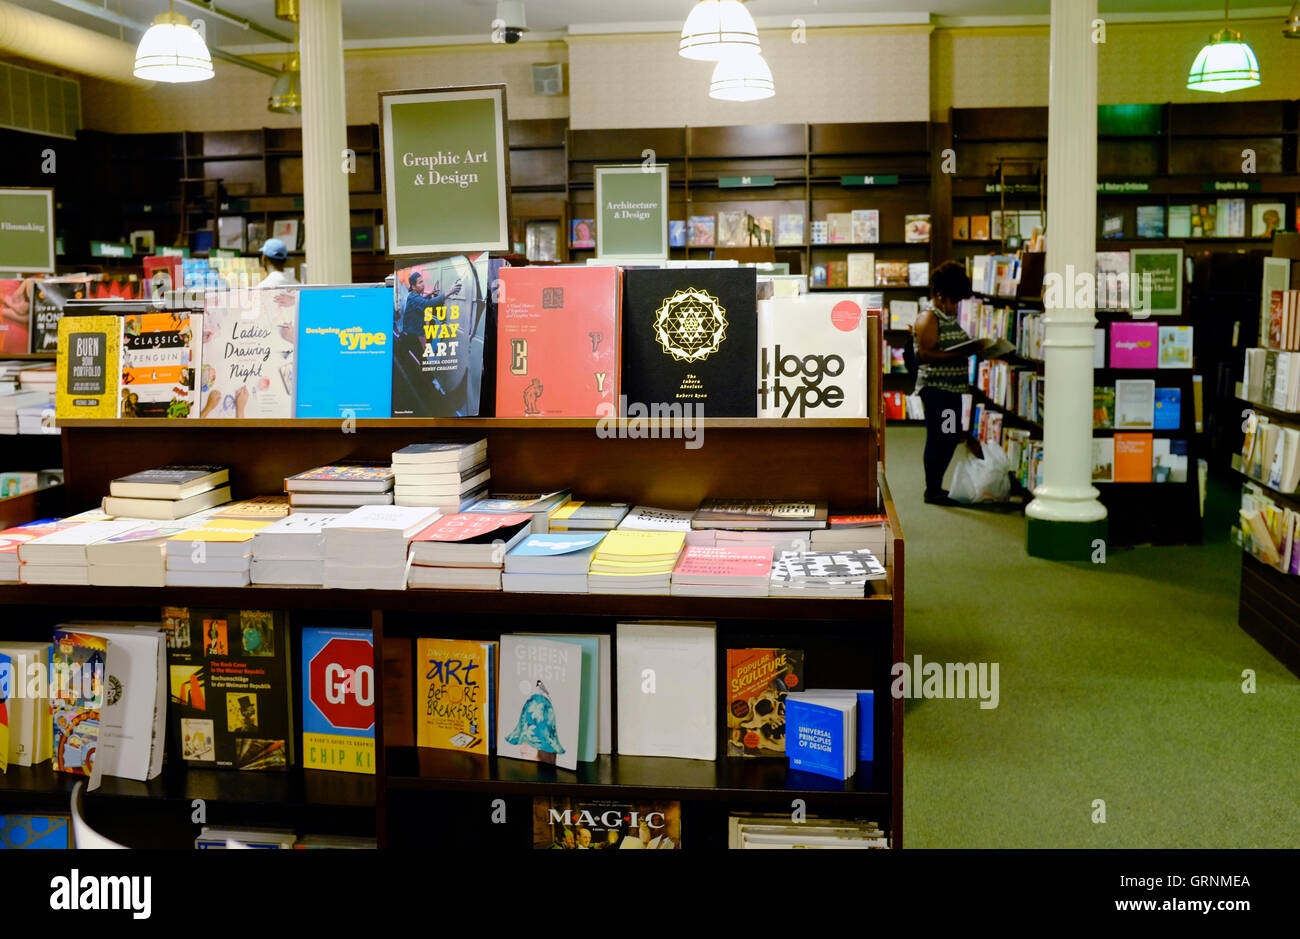 Books on display at Barnes & Noble Booksellers in Union Square,New York City,USA - Stock Image